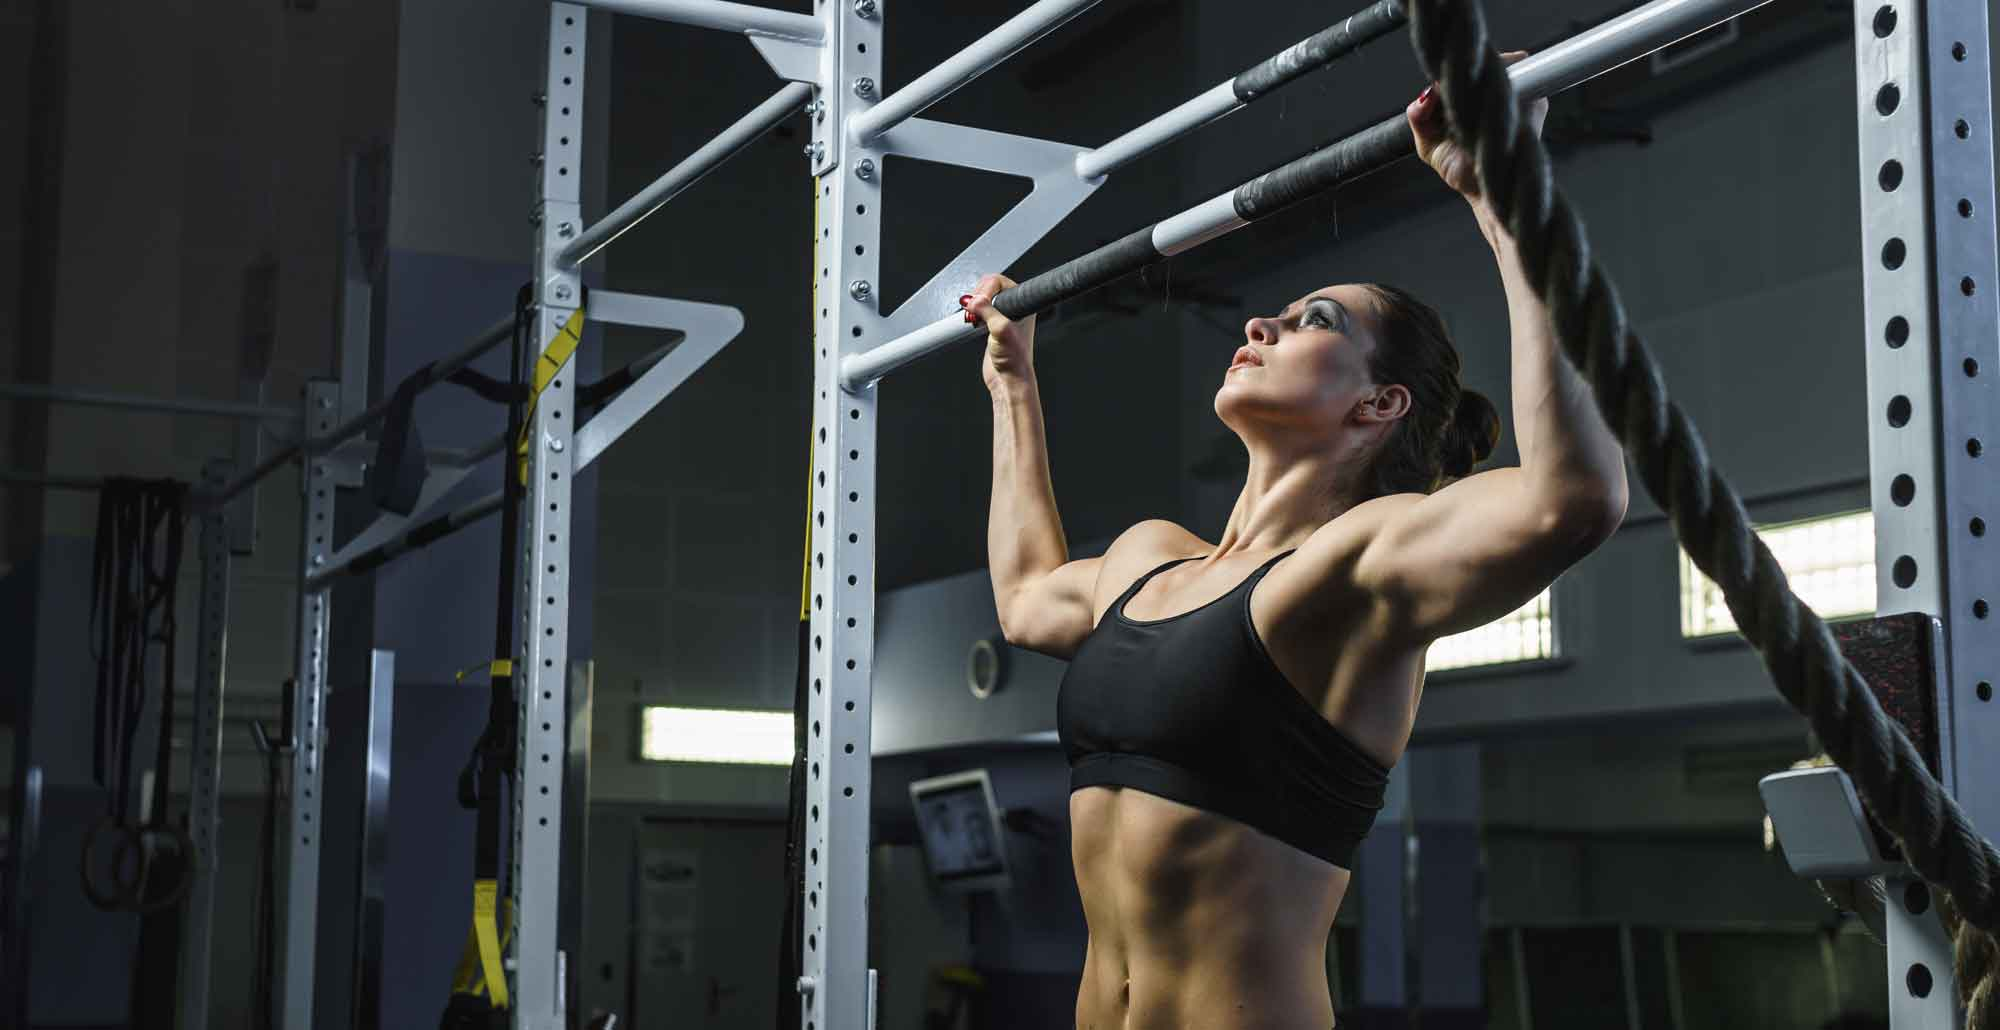 The 15 best crossfit wods for beginners